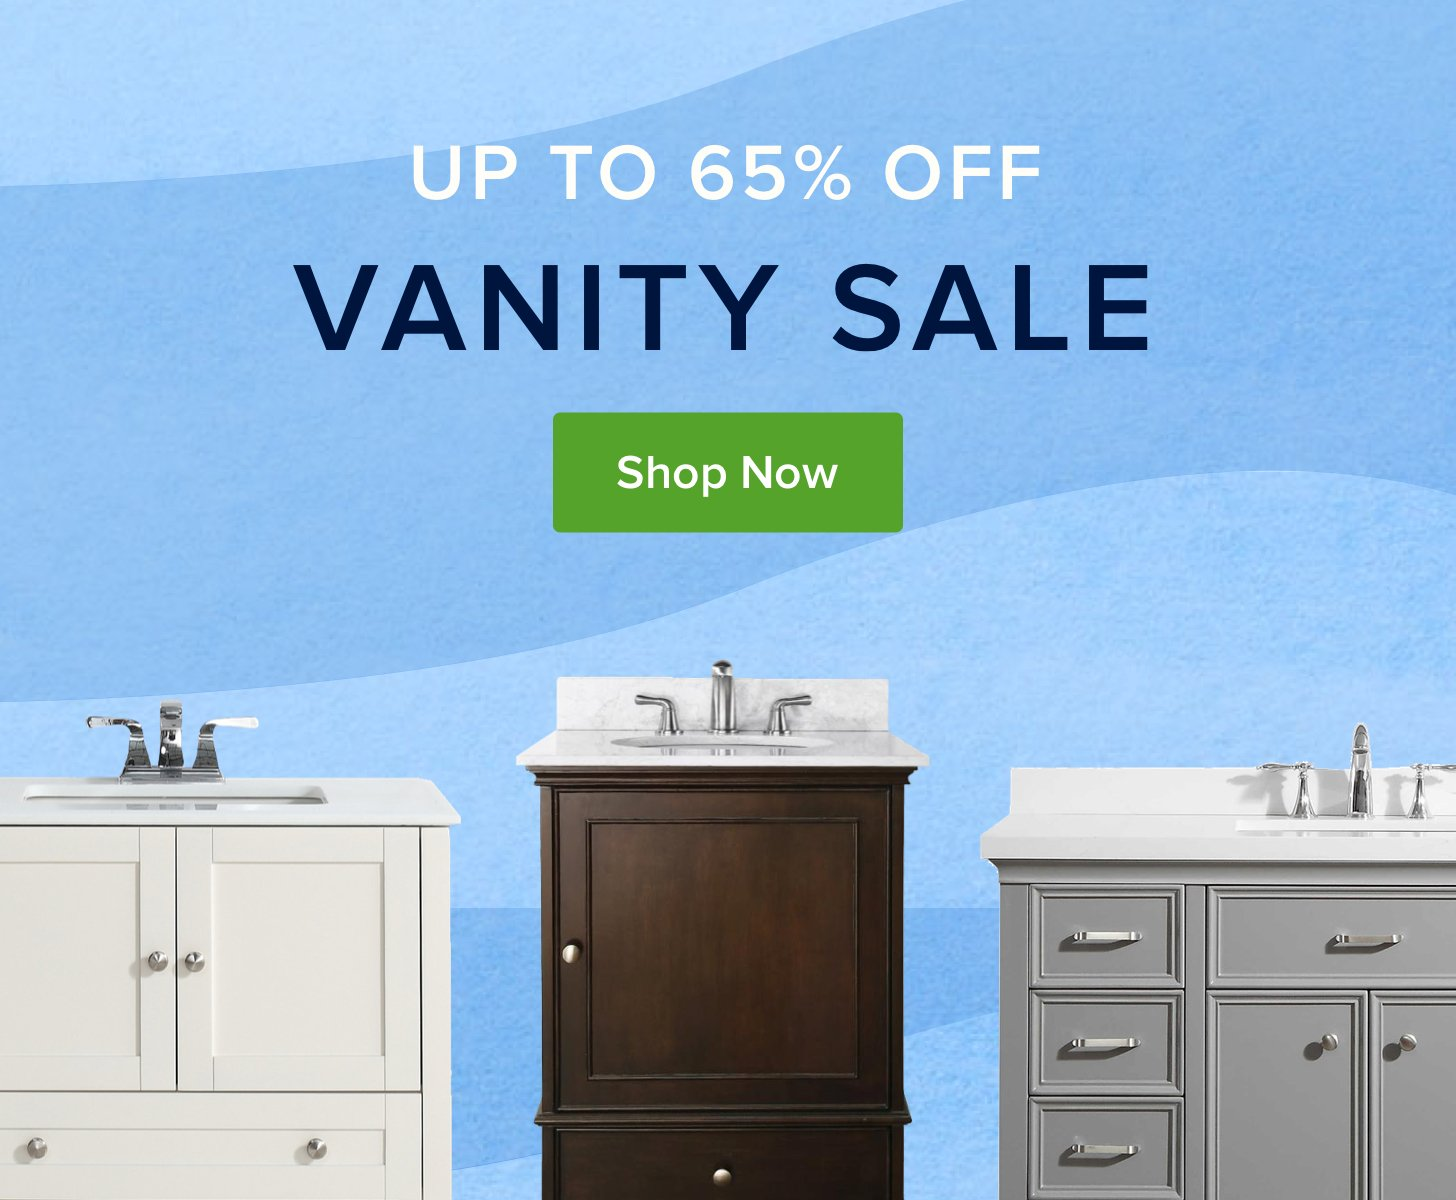 BATH VANITY SALE: Rustic & Farmhouse Styles | Minimalist Designs ...